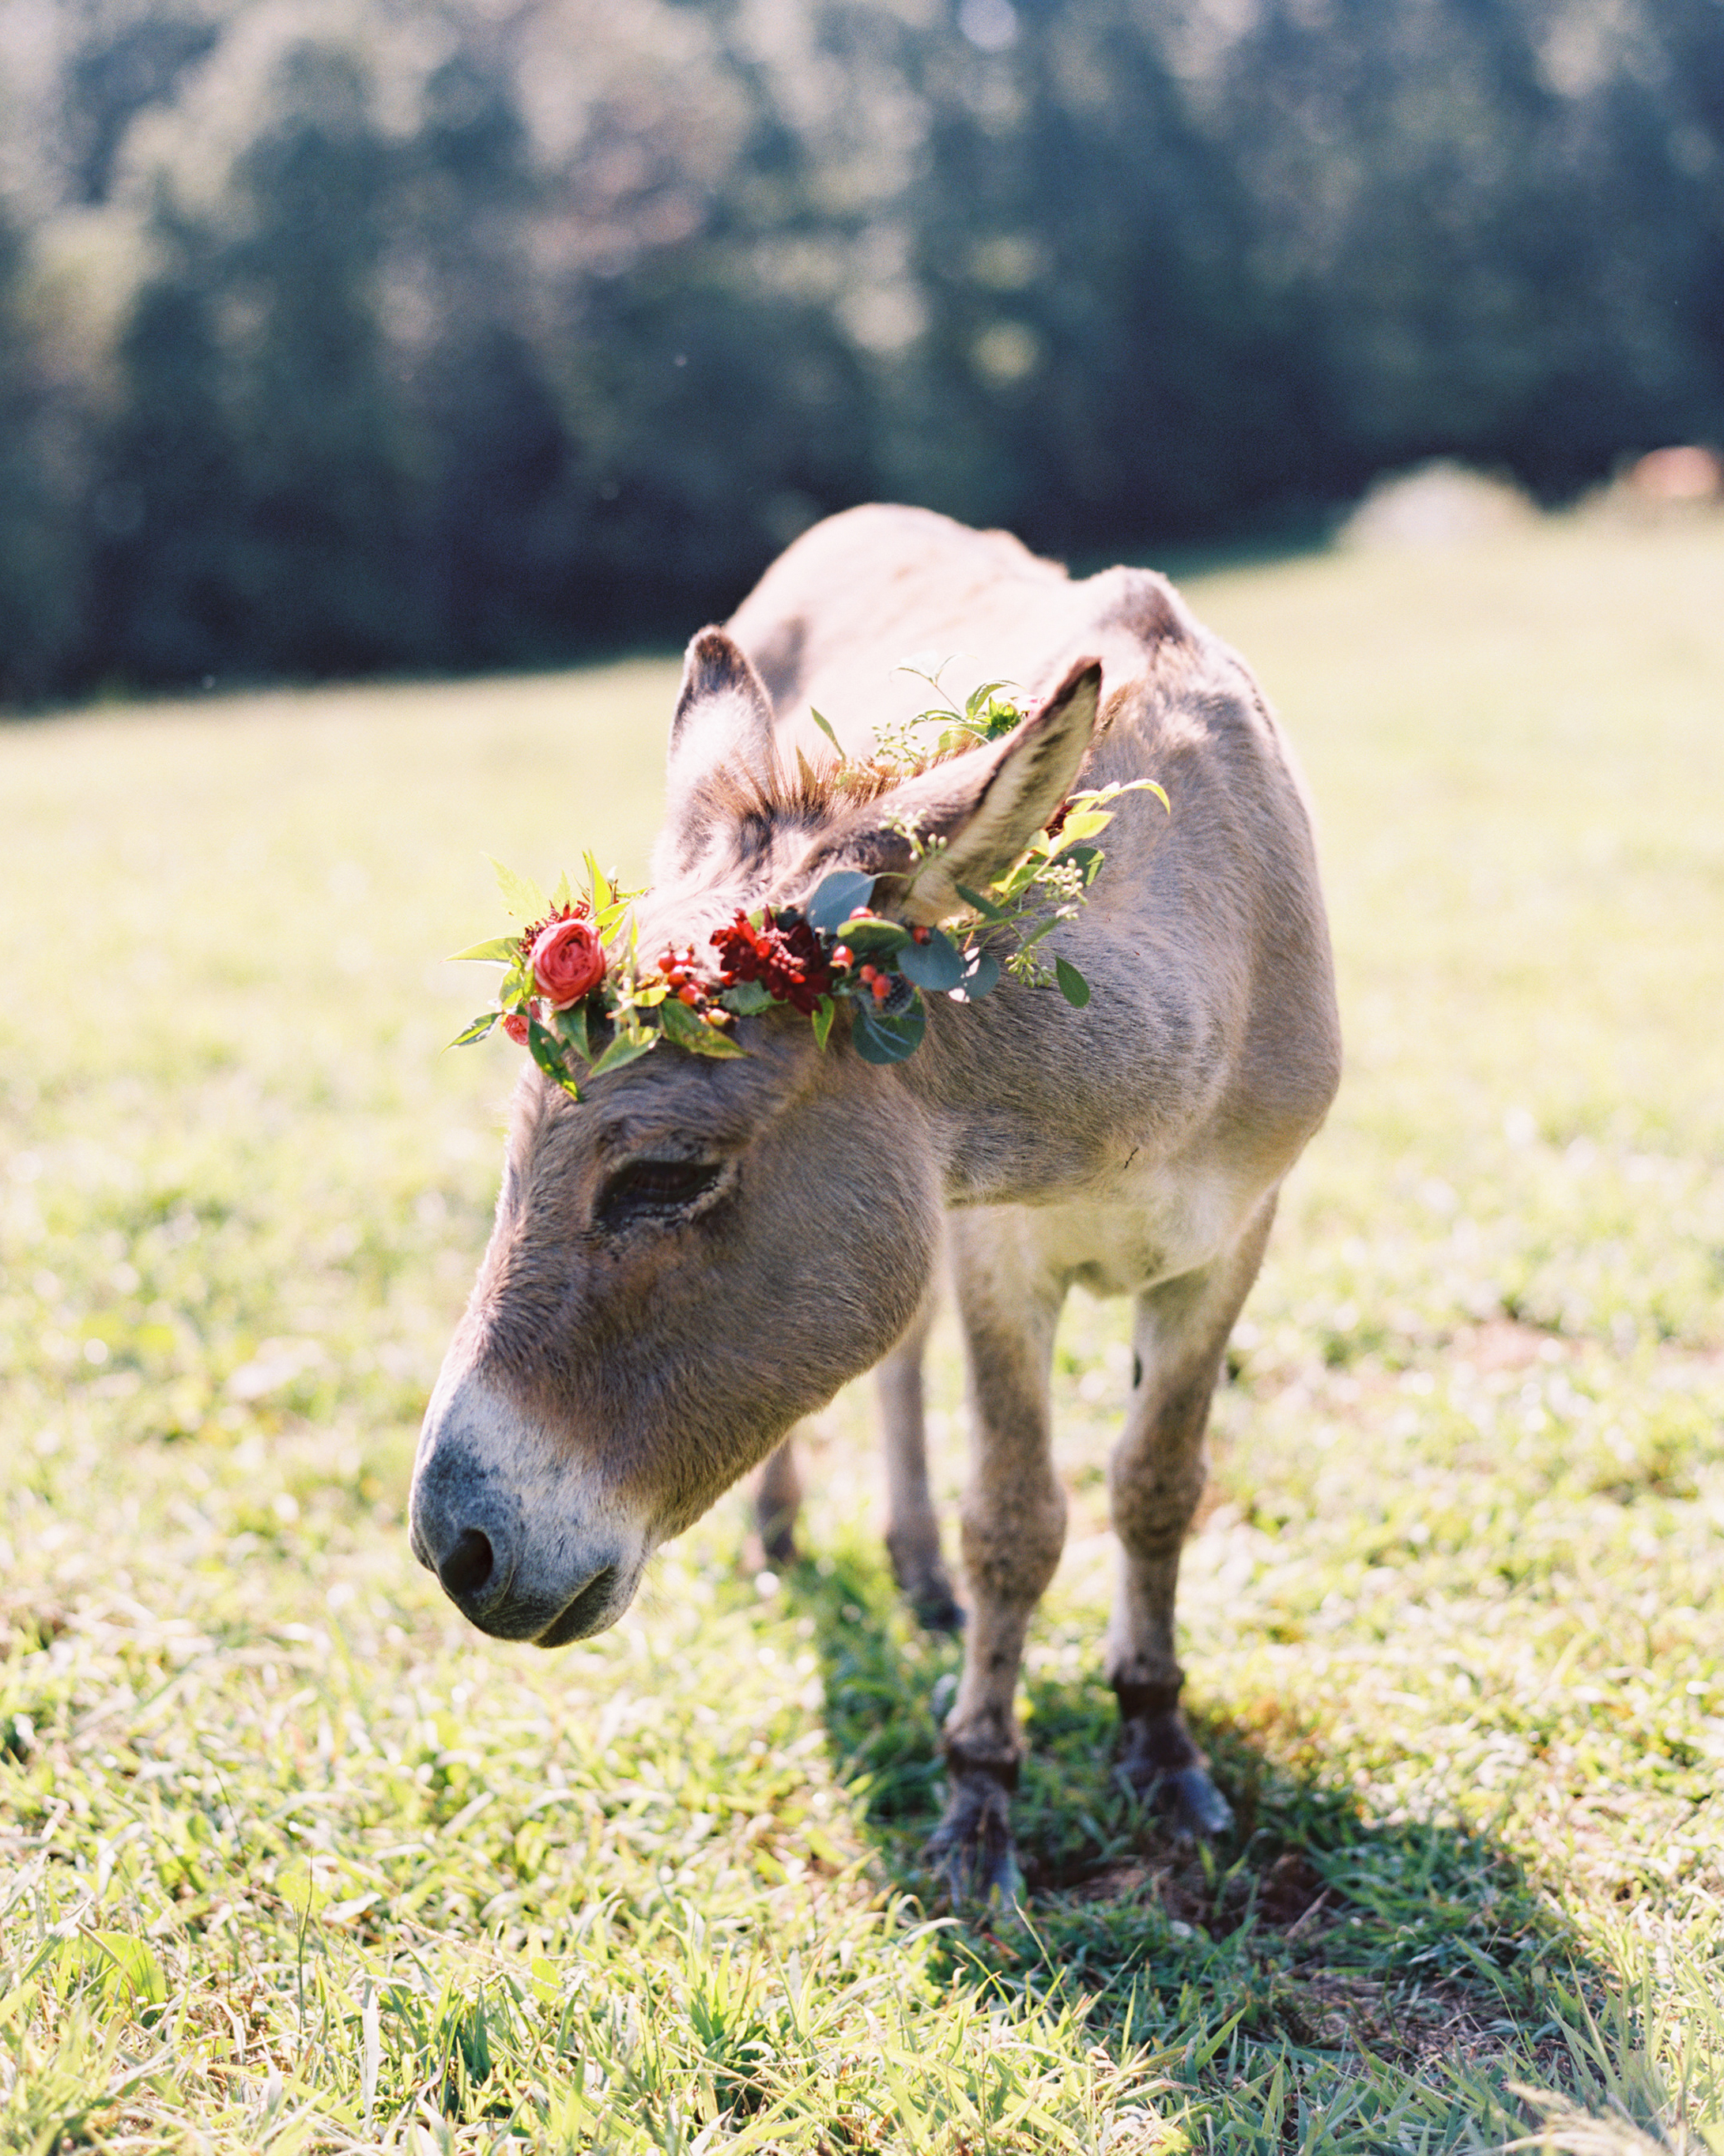 The Well-Dressed Donkey Diva